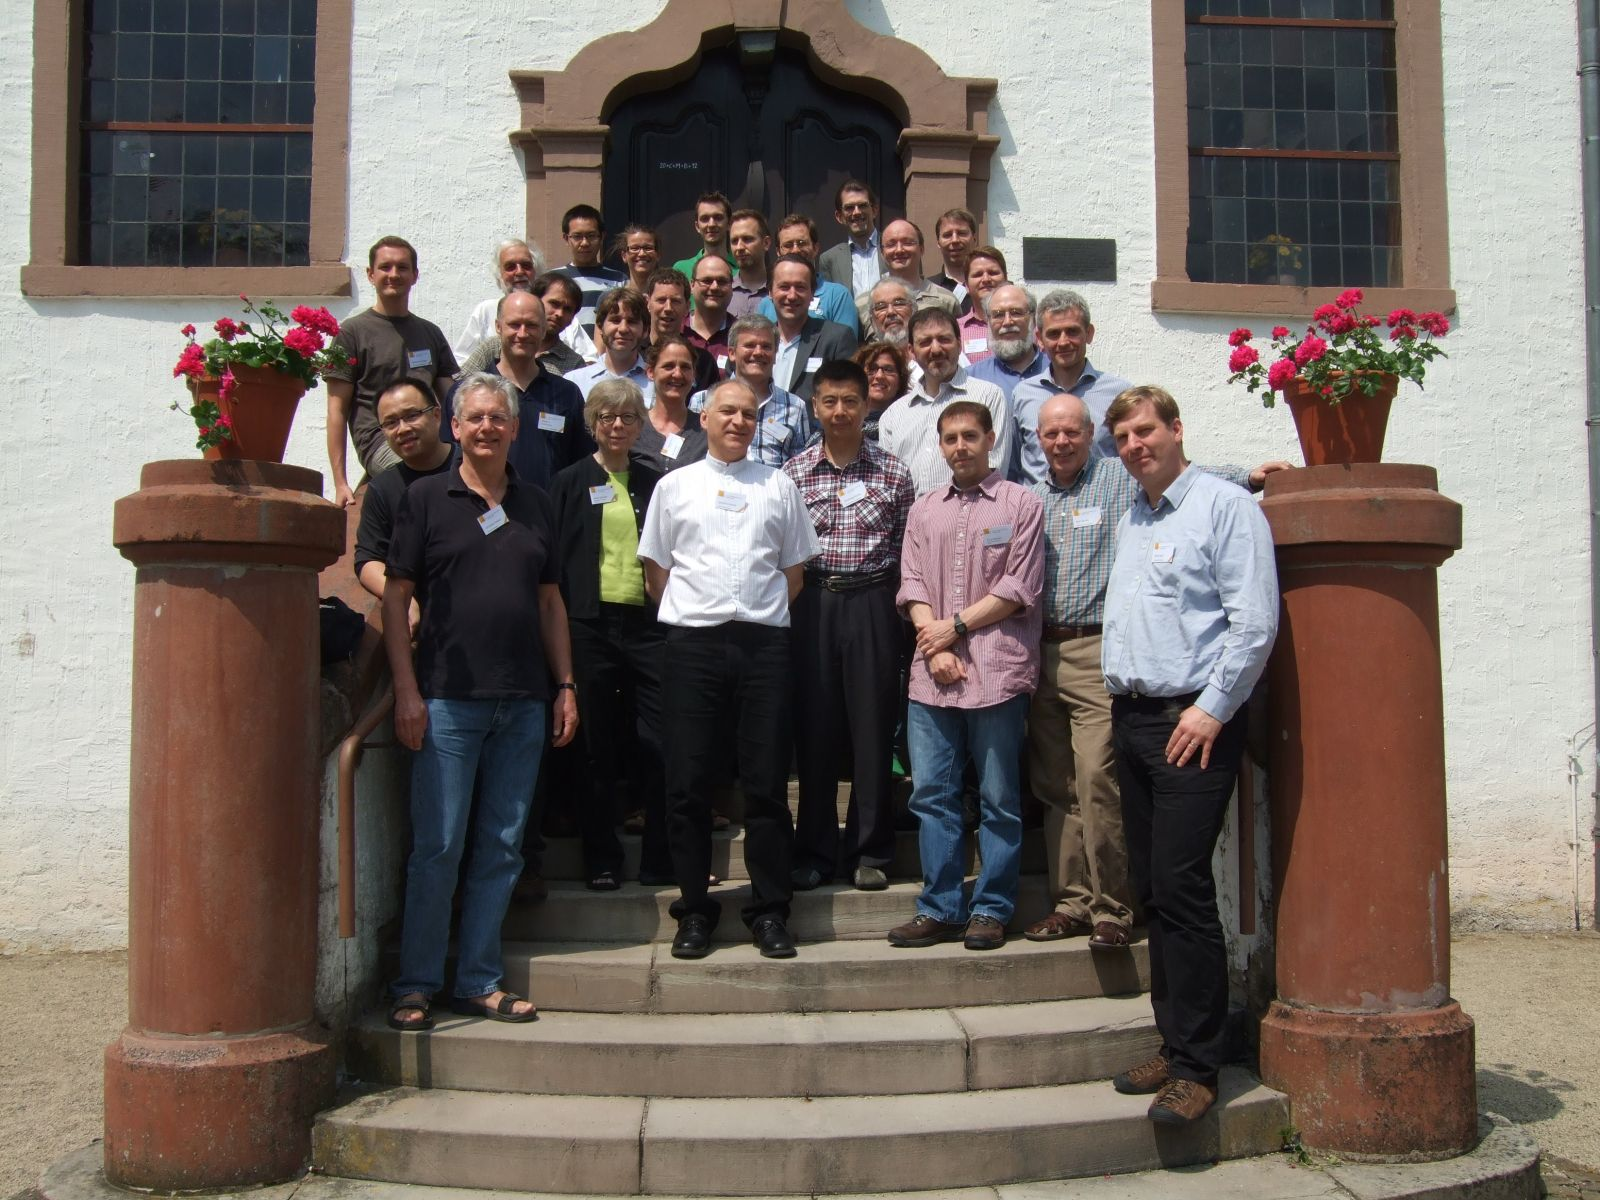 Group Picture of the Participants